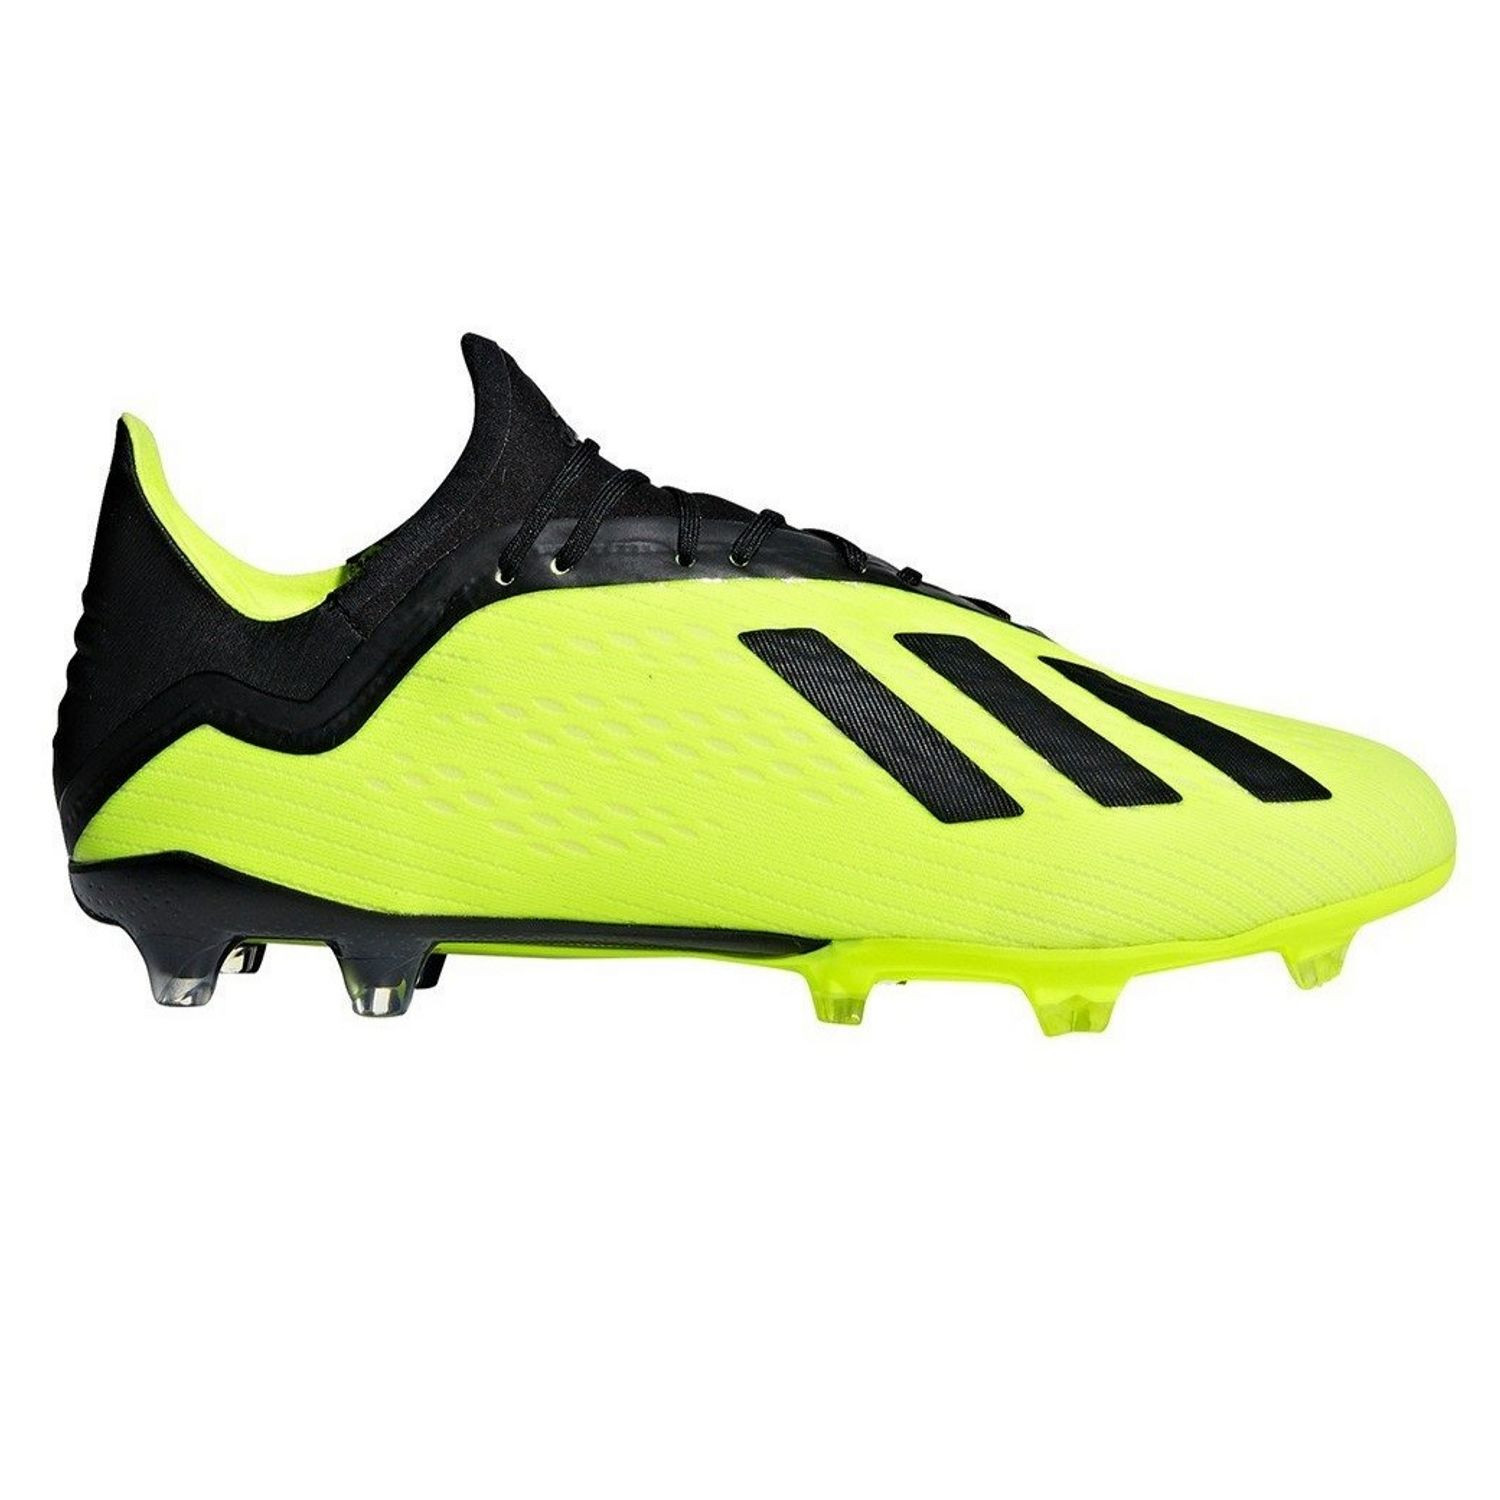 Kopačky ADIDAS X 18.2 Firm Ground Yellow Žltá 41 13